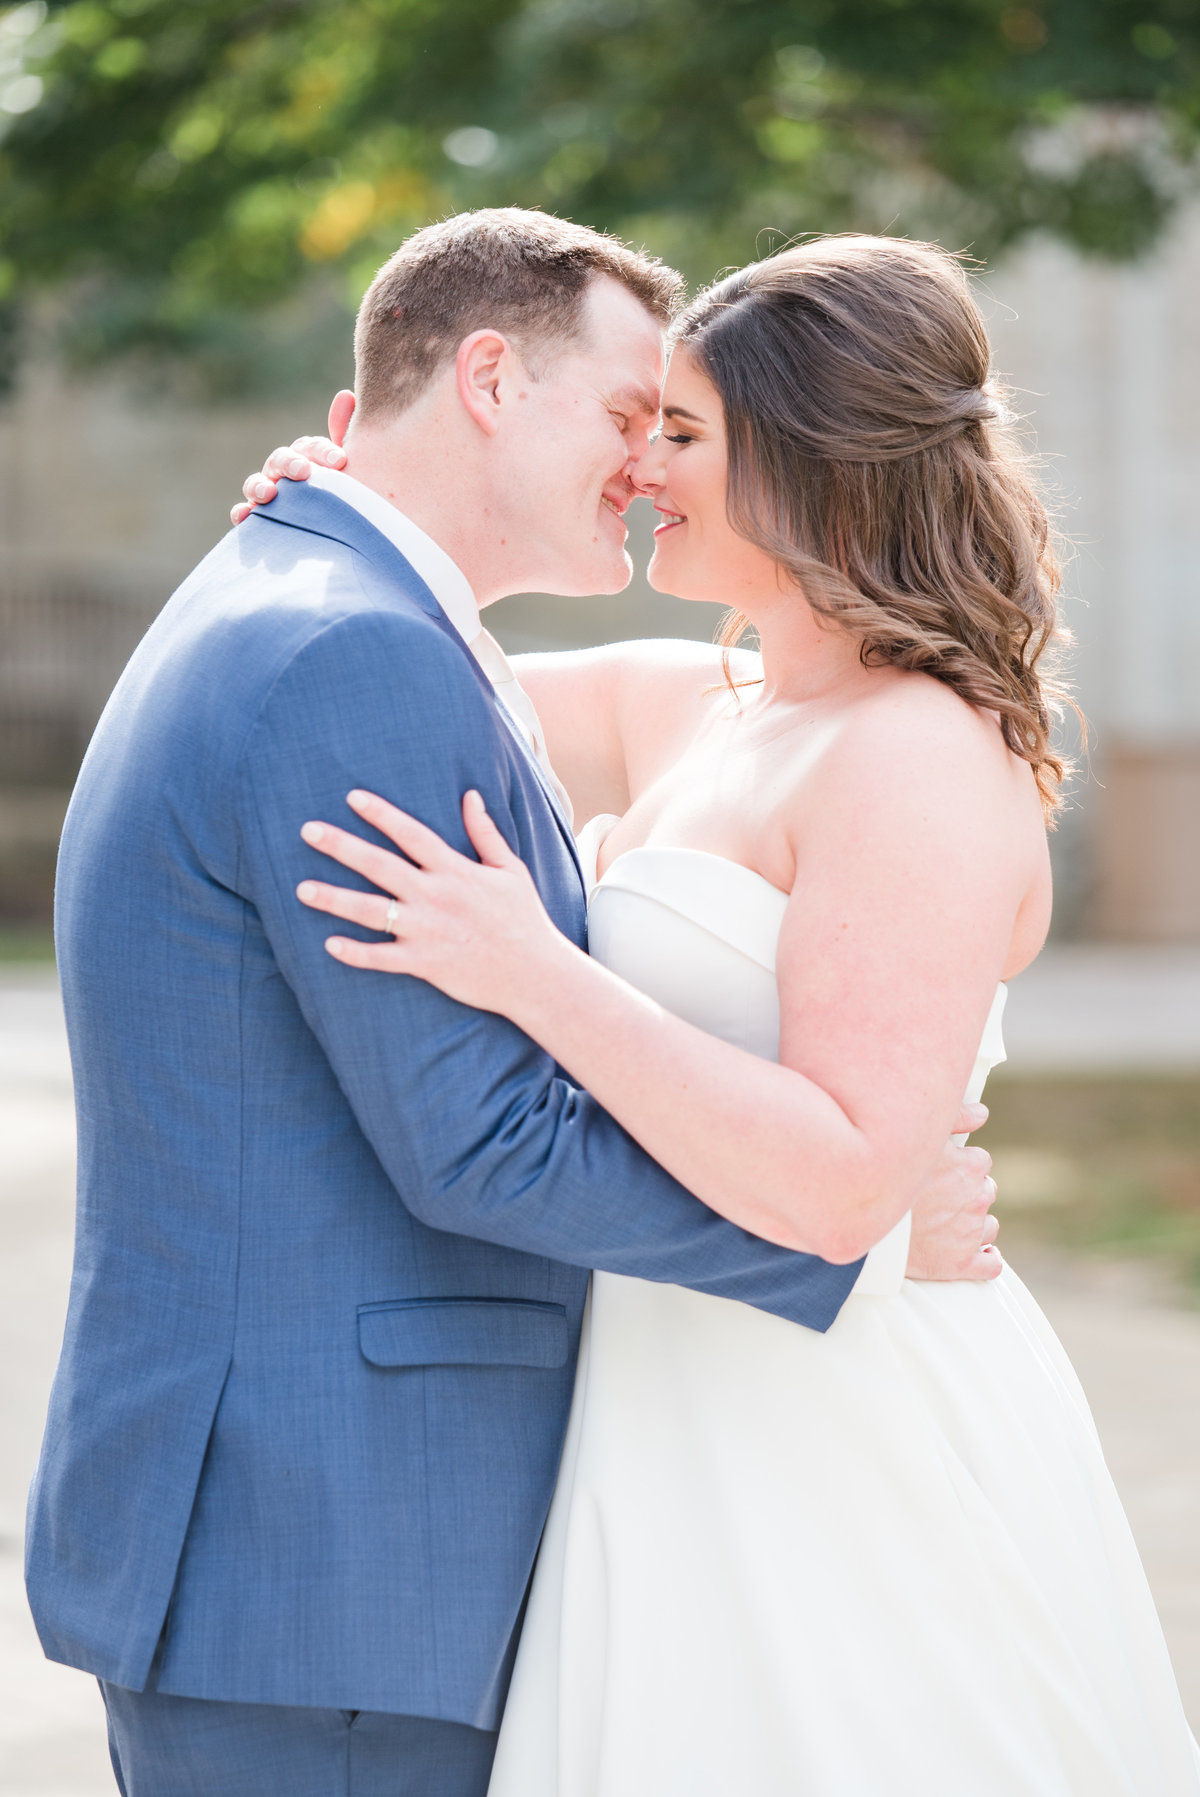 Newlywed Portraits Cait Potter Creative LLC Milltop Potters Bridge Noblesville Square Courthouse Wedding-18